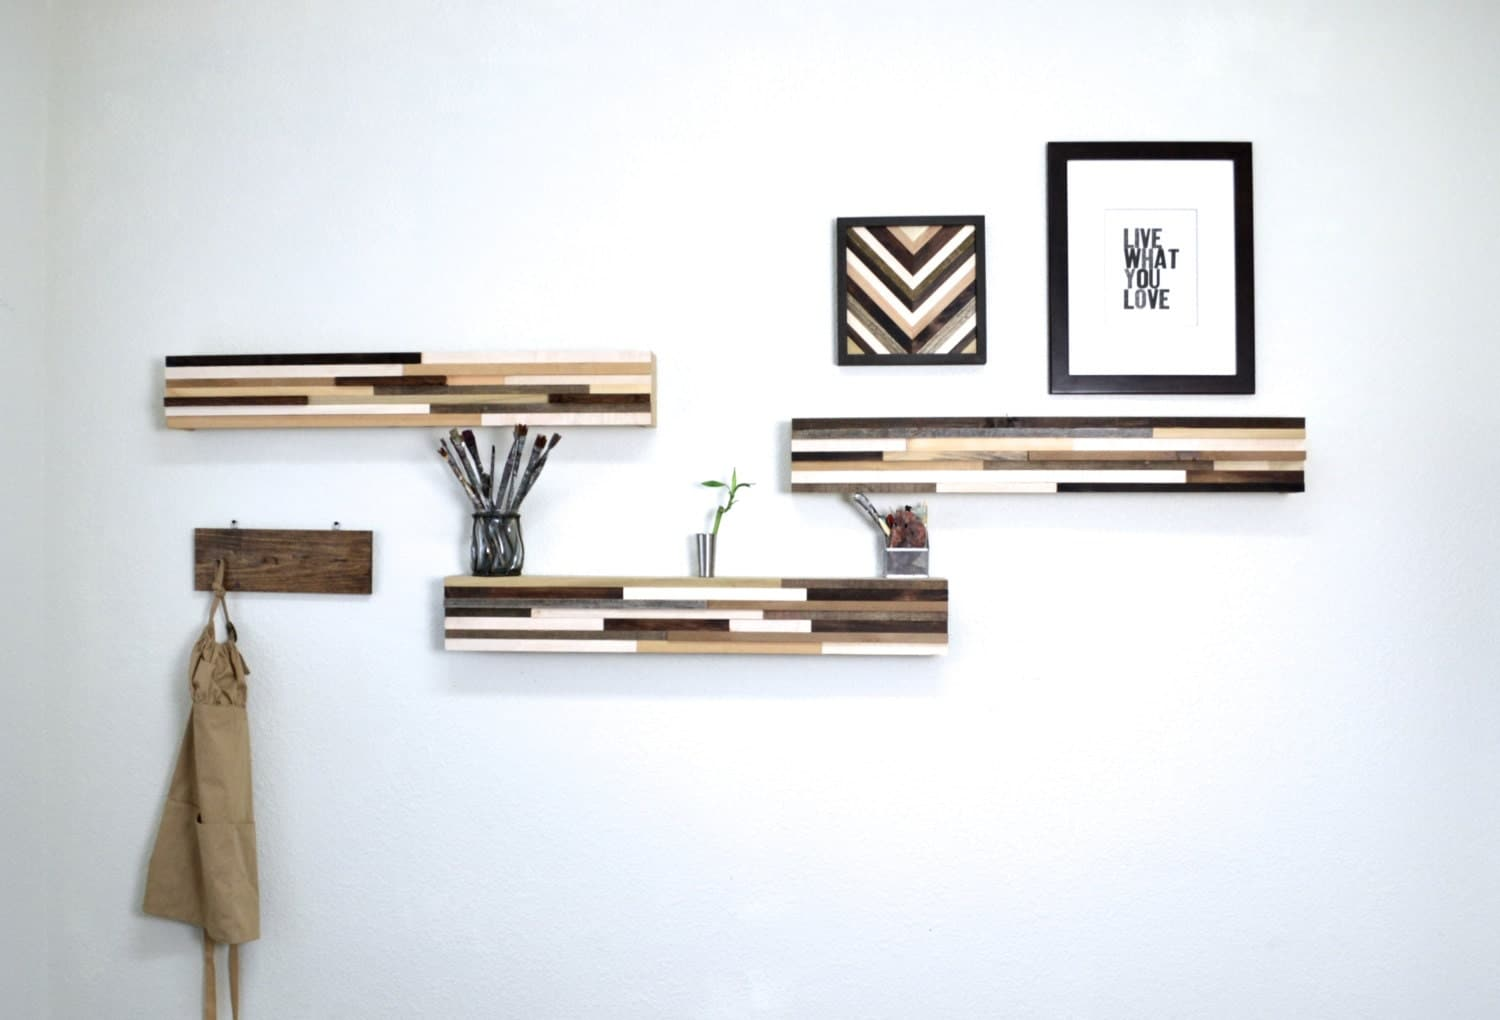 Superb img of Reclaimed Wood Wall Art Shelf Abstract Wood by moderntextures with #8A6A41 color and 1500x1020 pixels